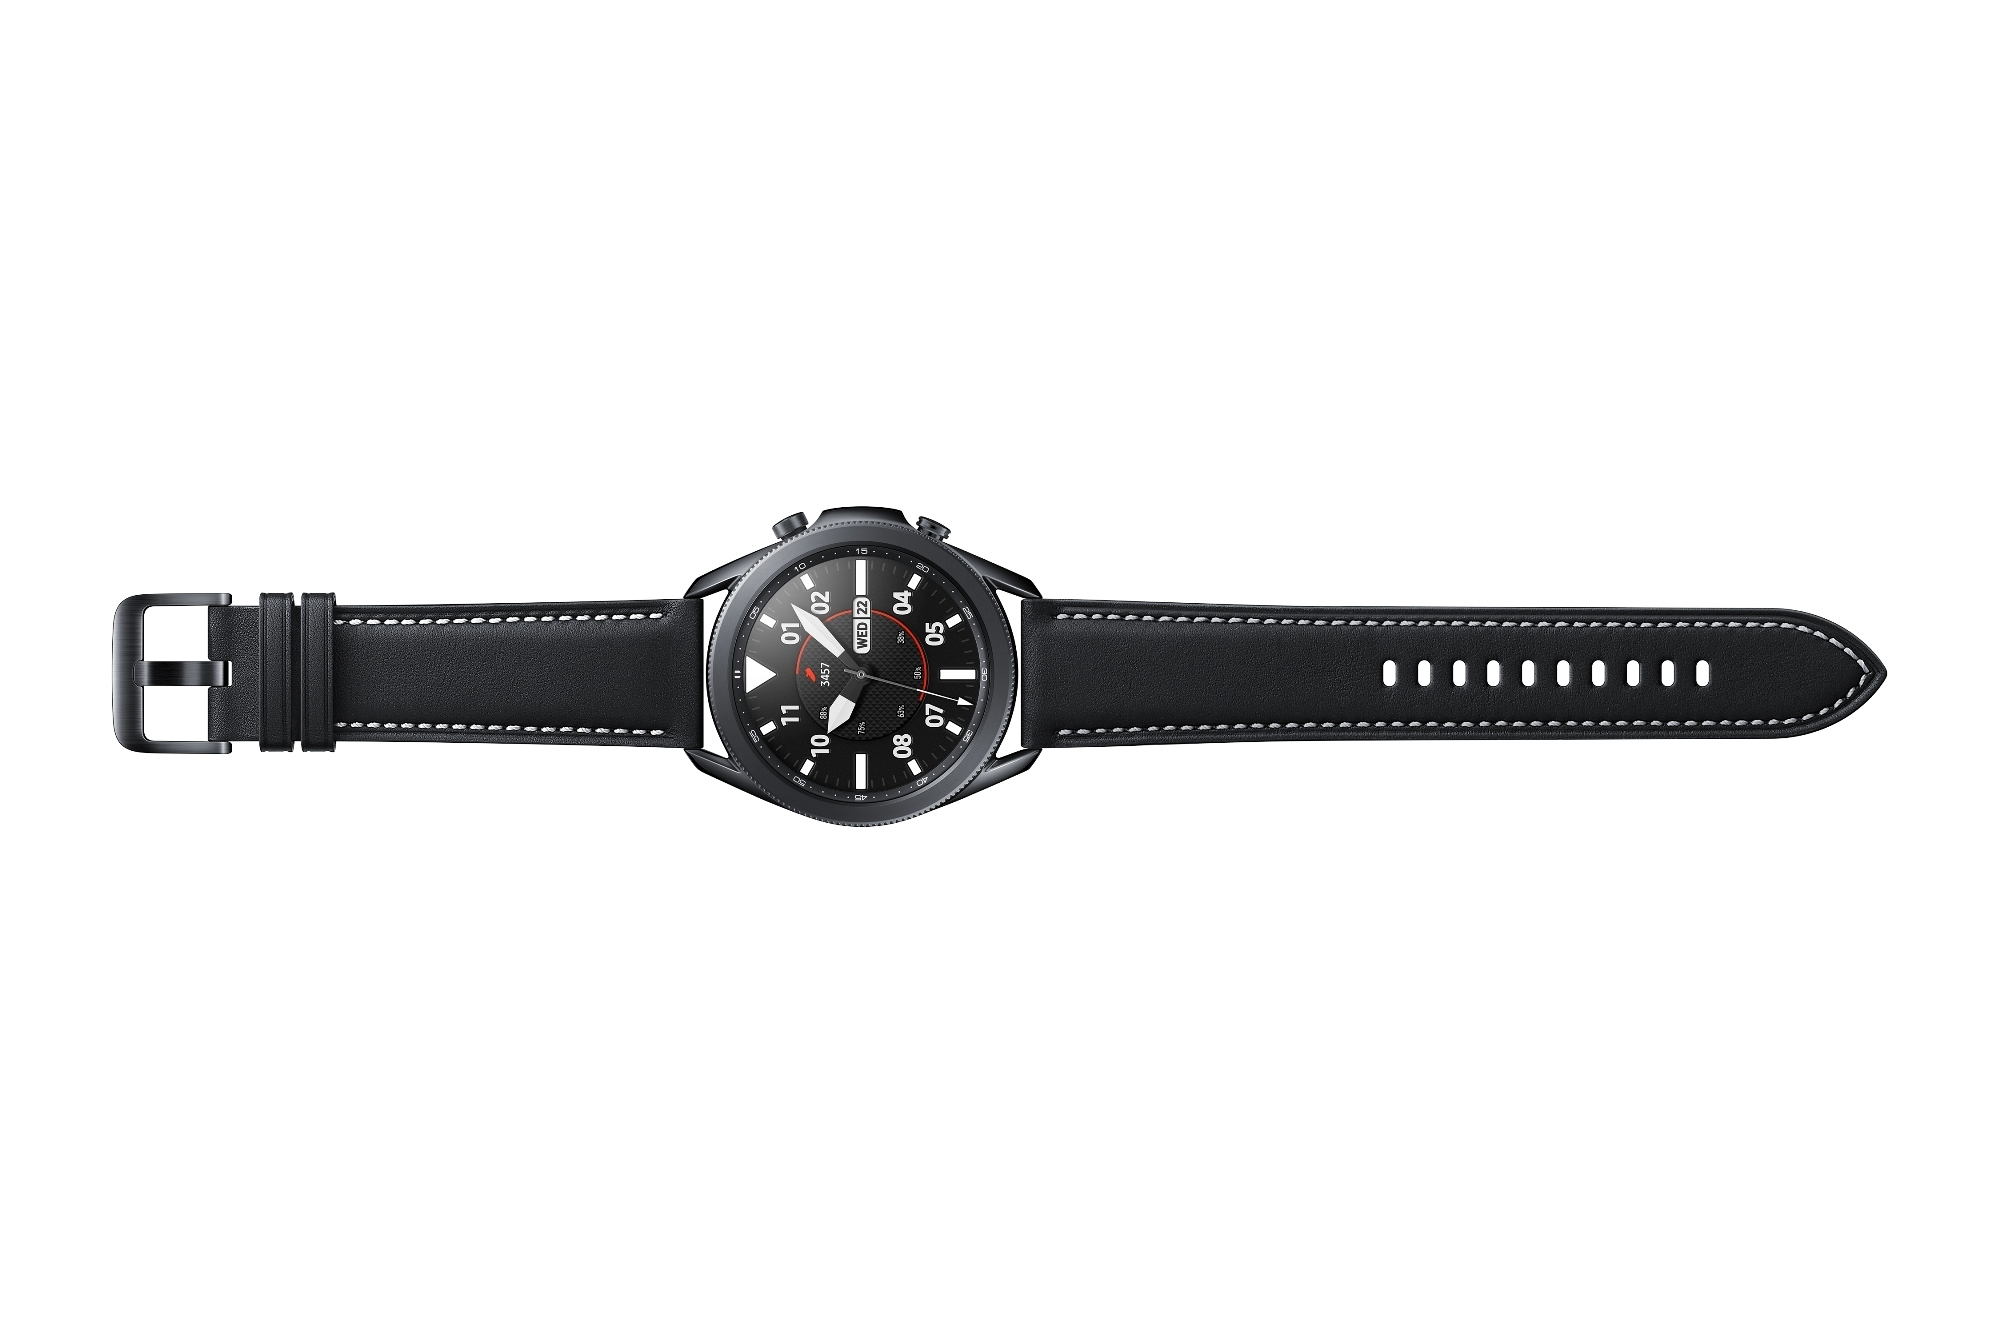 Montre connectée Galaxy Watch 3 SM-R840 45 mm Samsung Argent